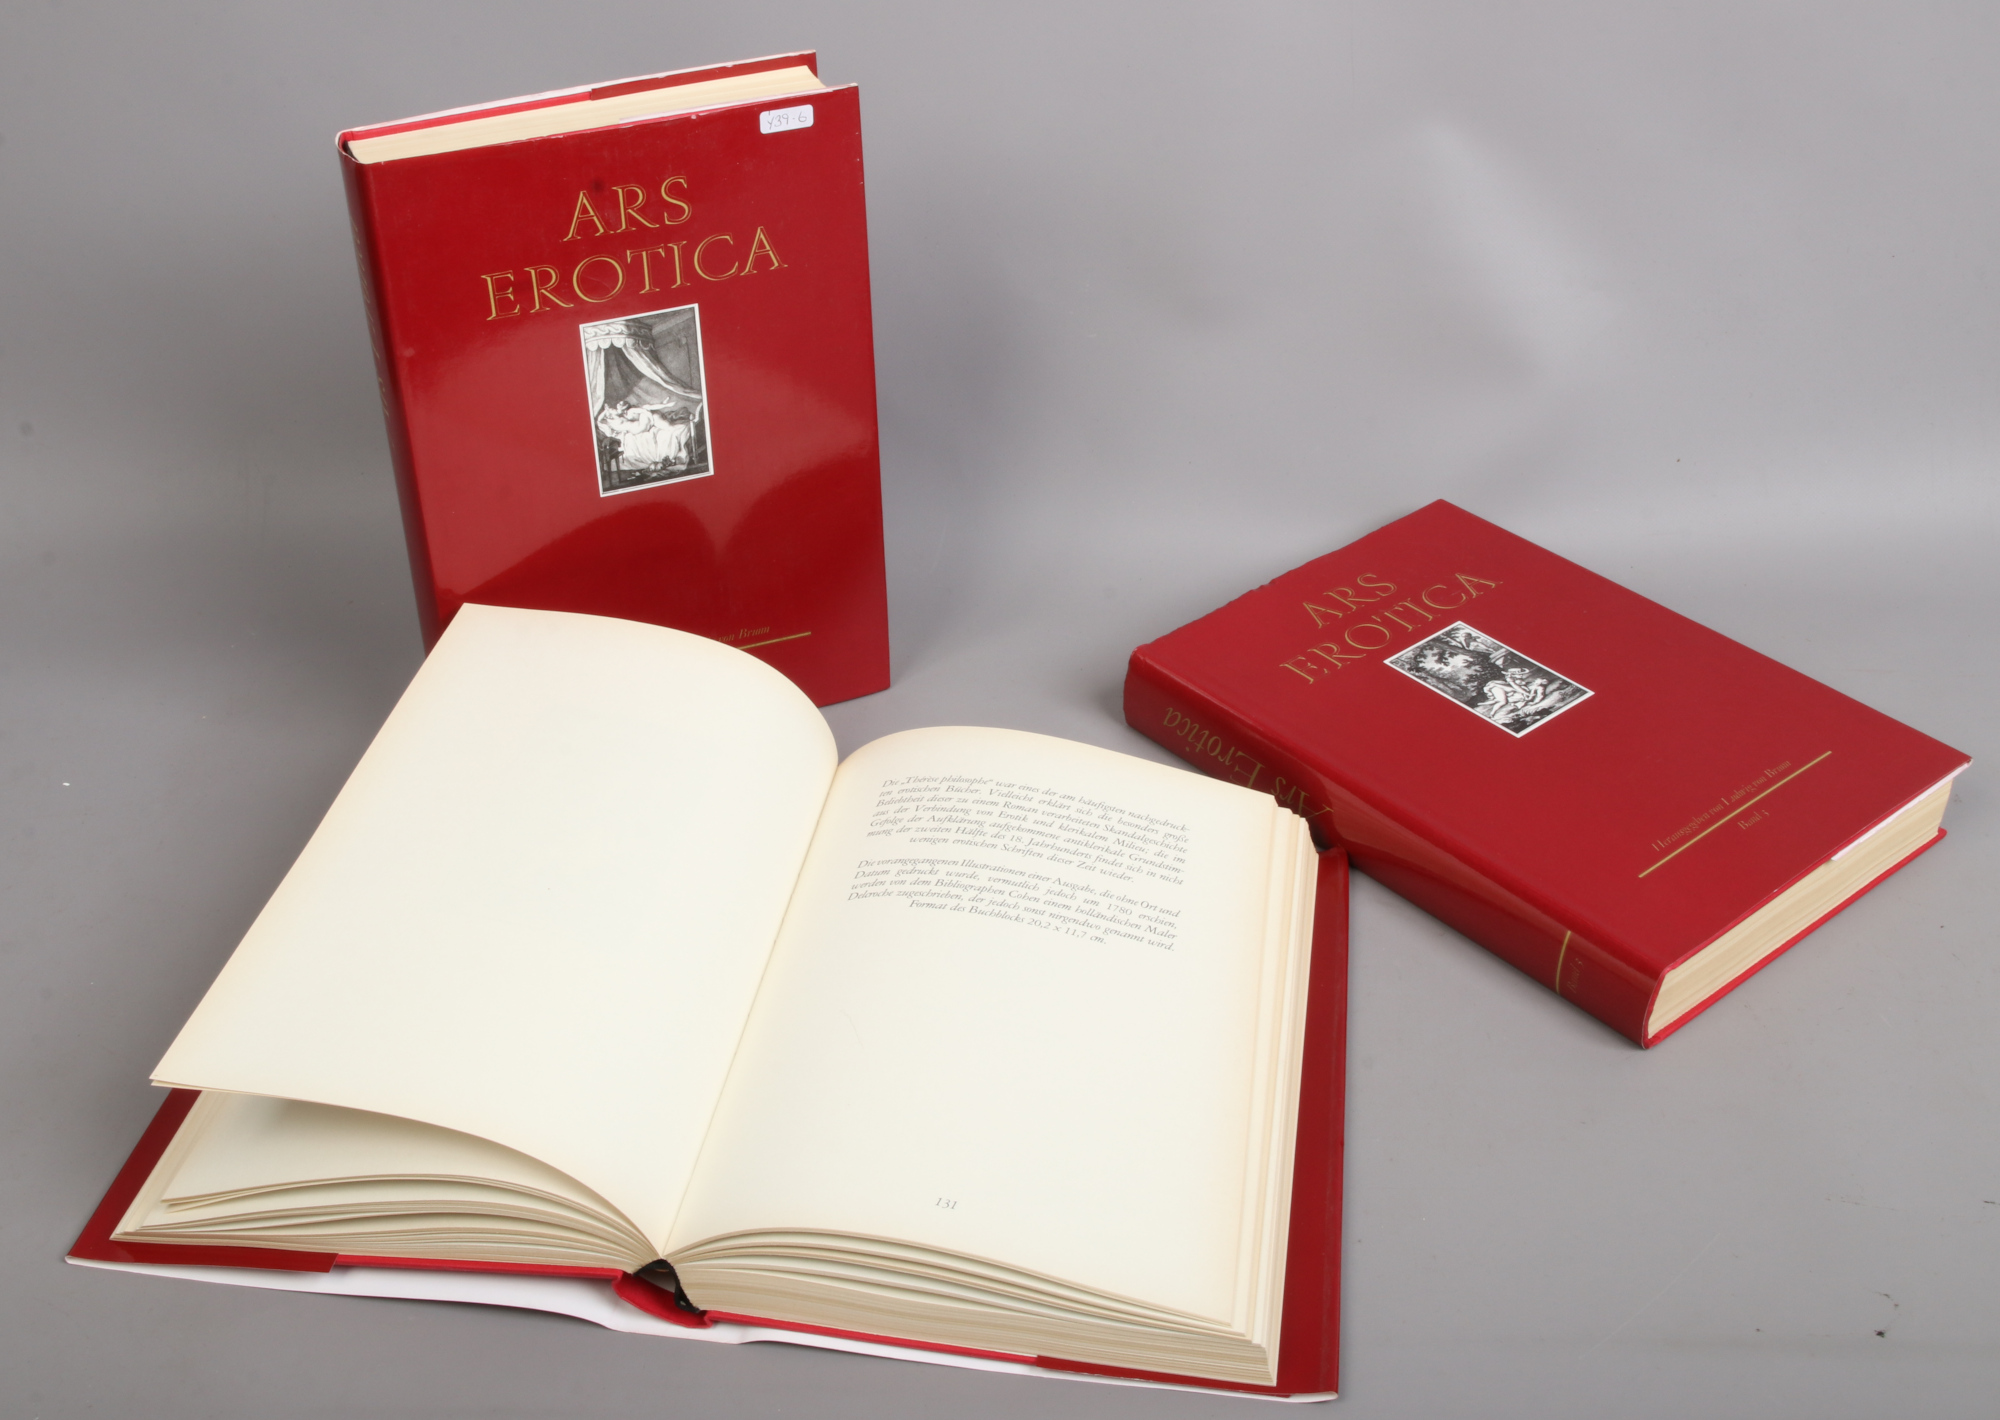 Lot 106 - Three hardback volumes of ARS Erotica with dust jackets 1989 printed in spain.